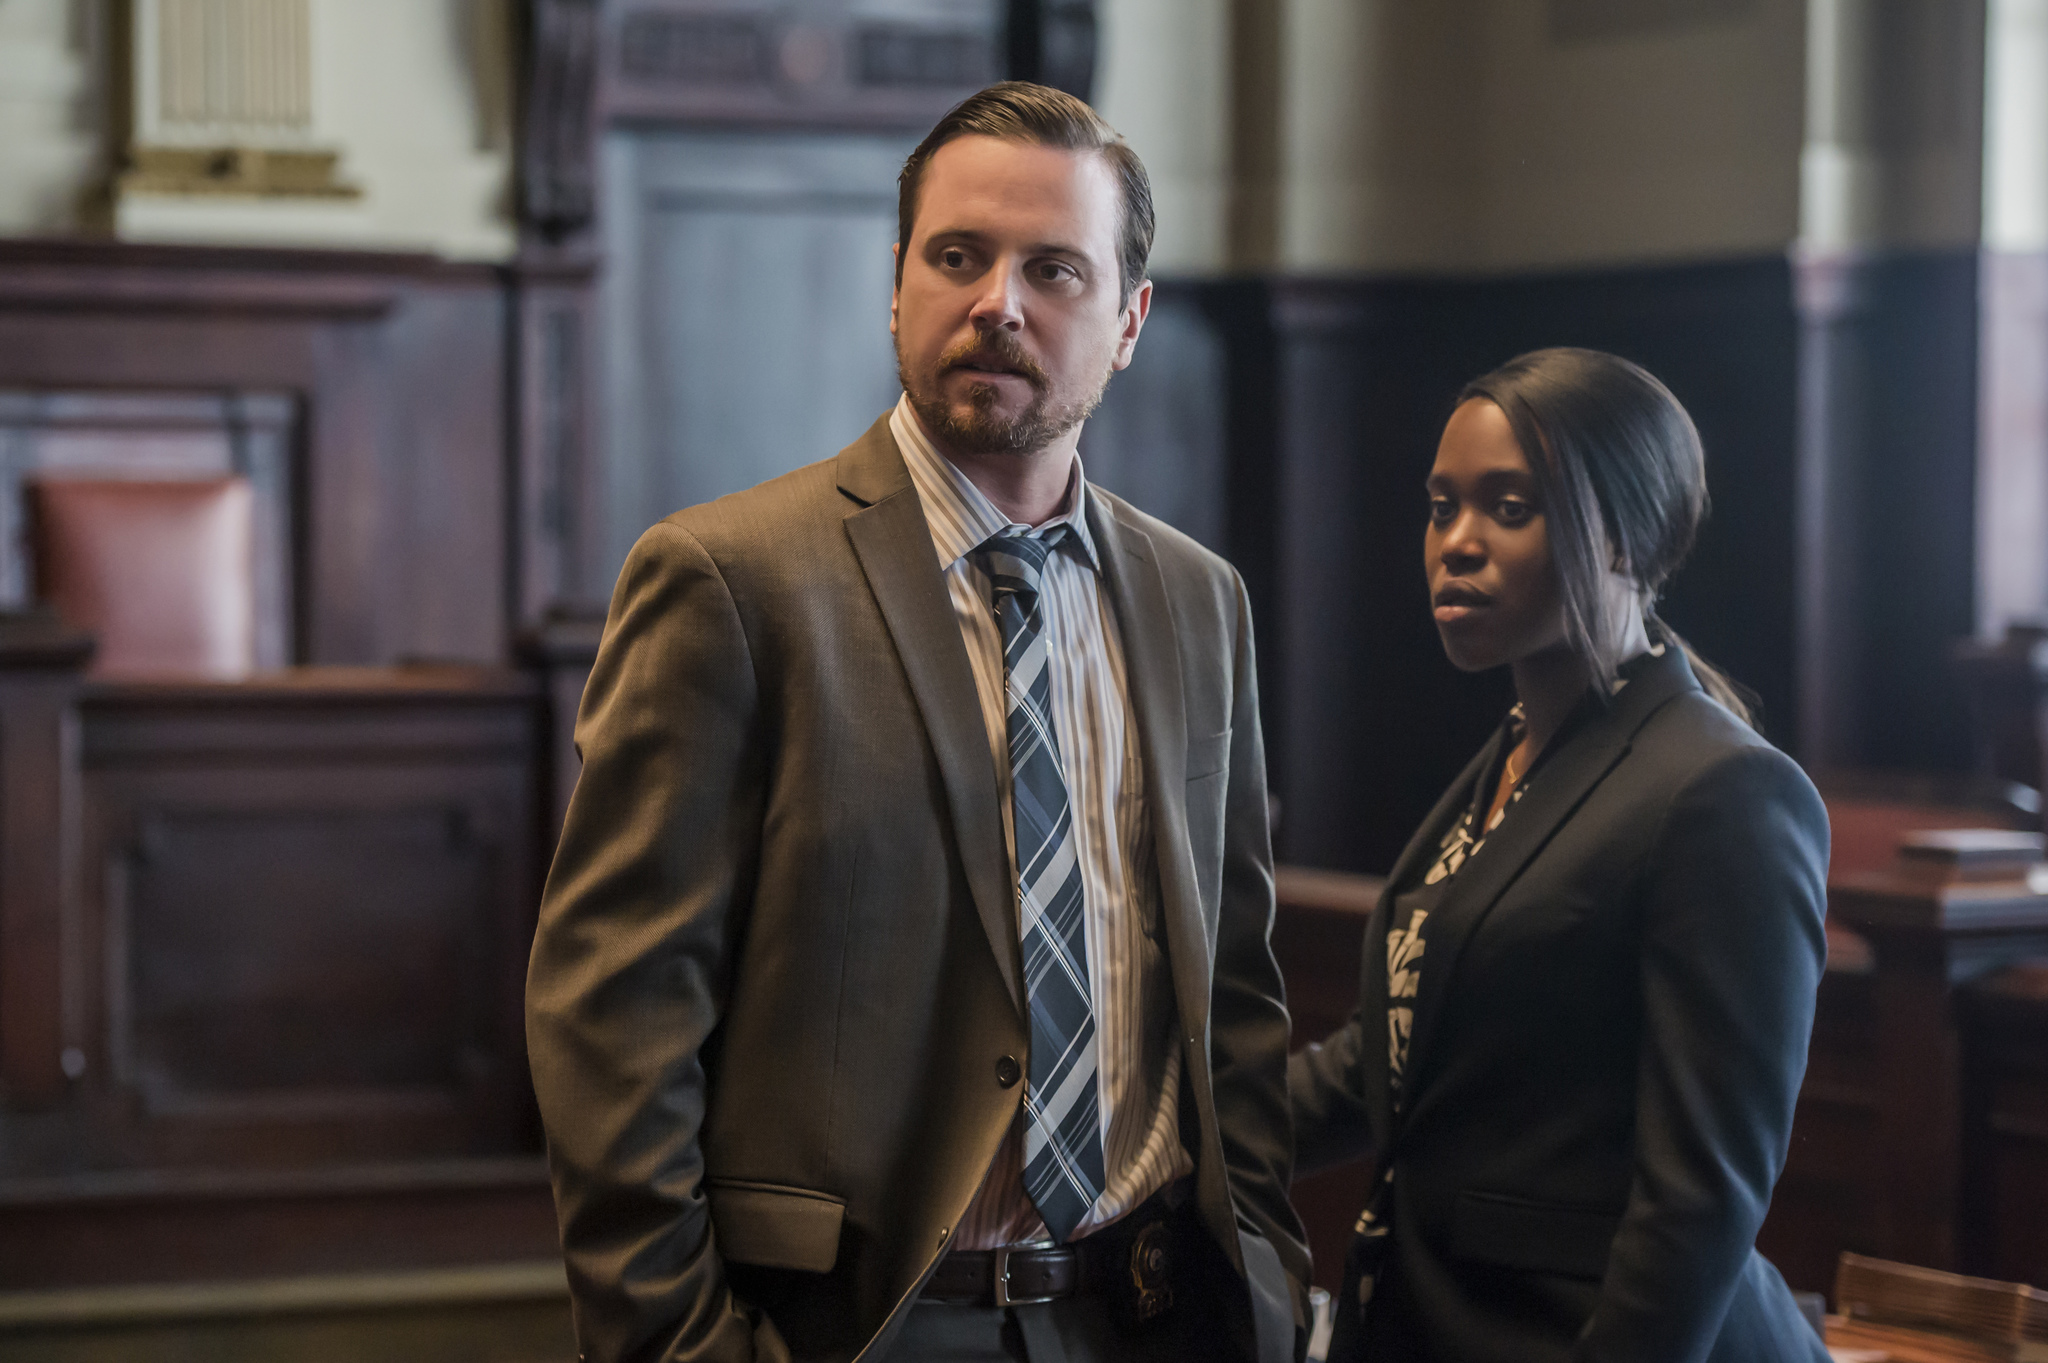 Michael Mosley and Clare-Hope Ashitey in Seven Seconds (2018)